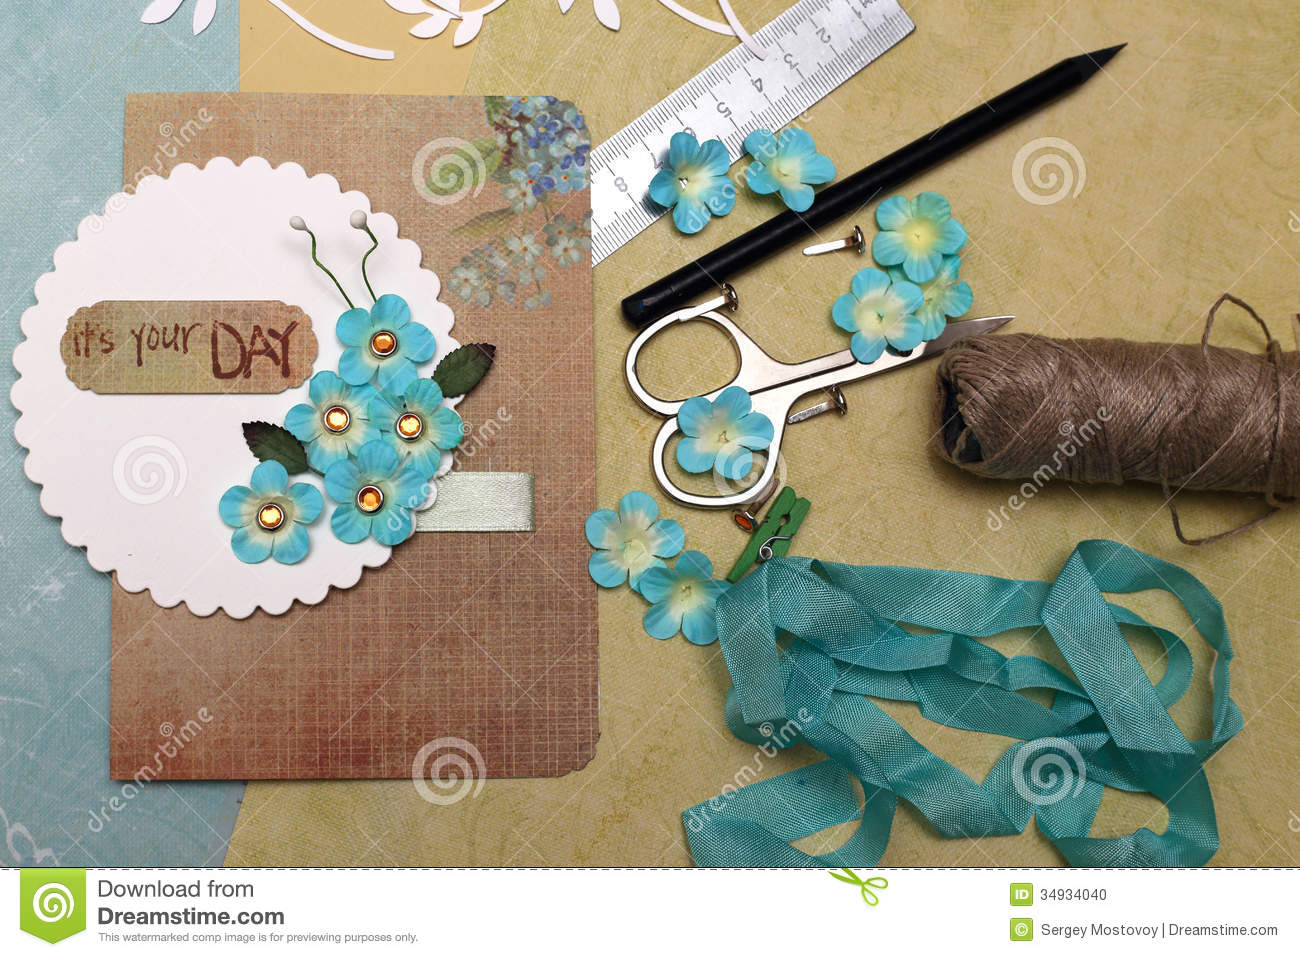 Ribbon Cutting Invitation is Cool Ideas To Make Nice Invitation Ideas